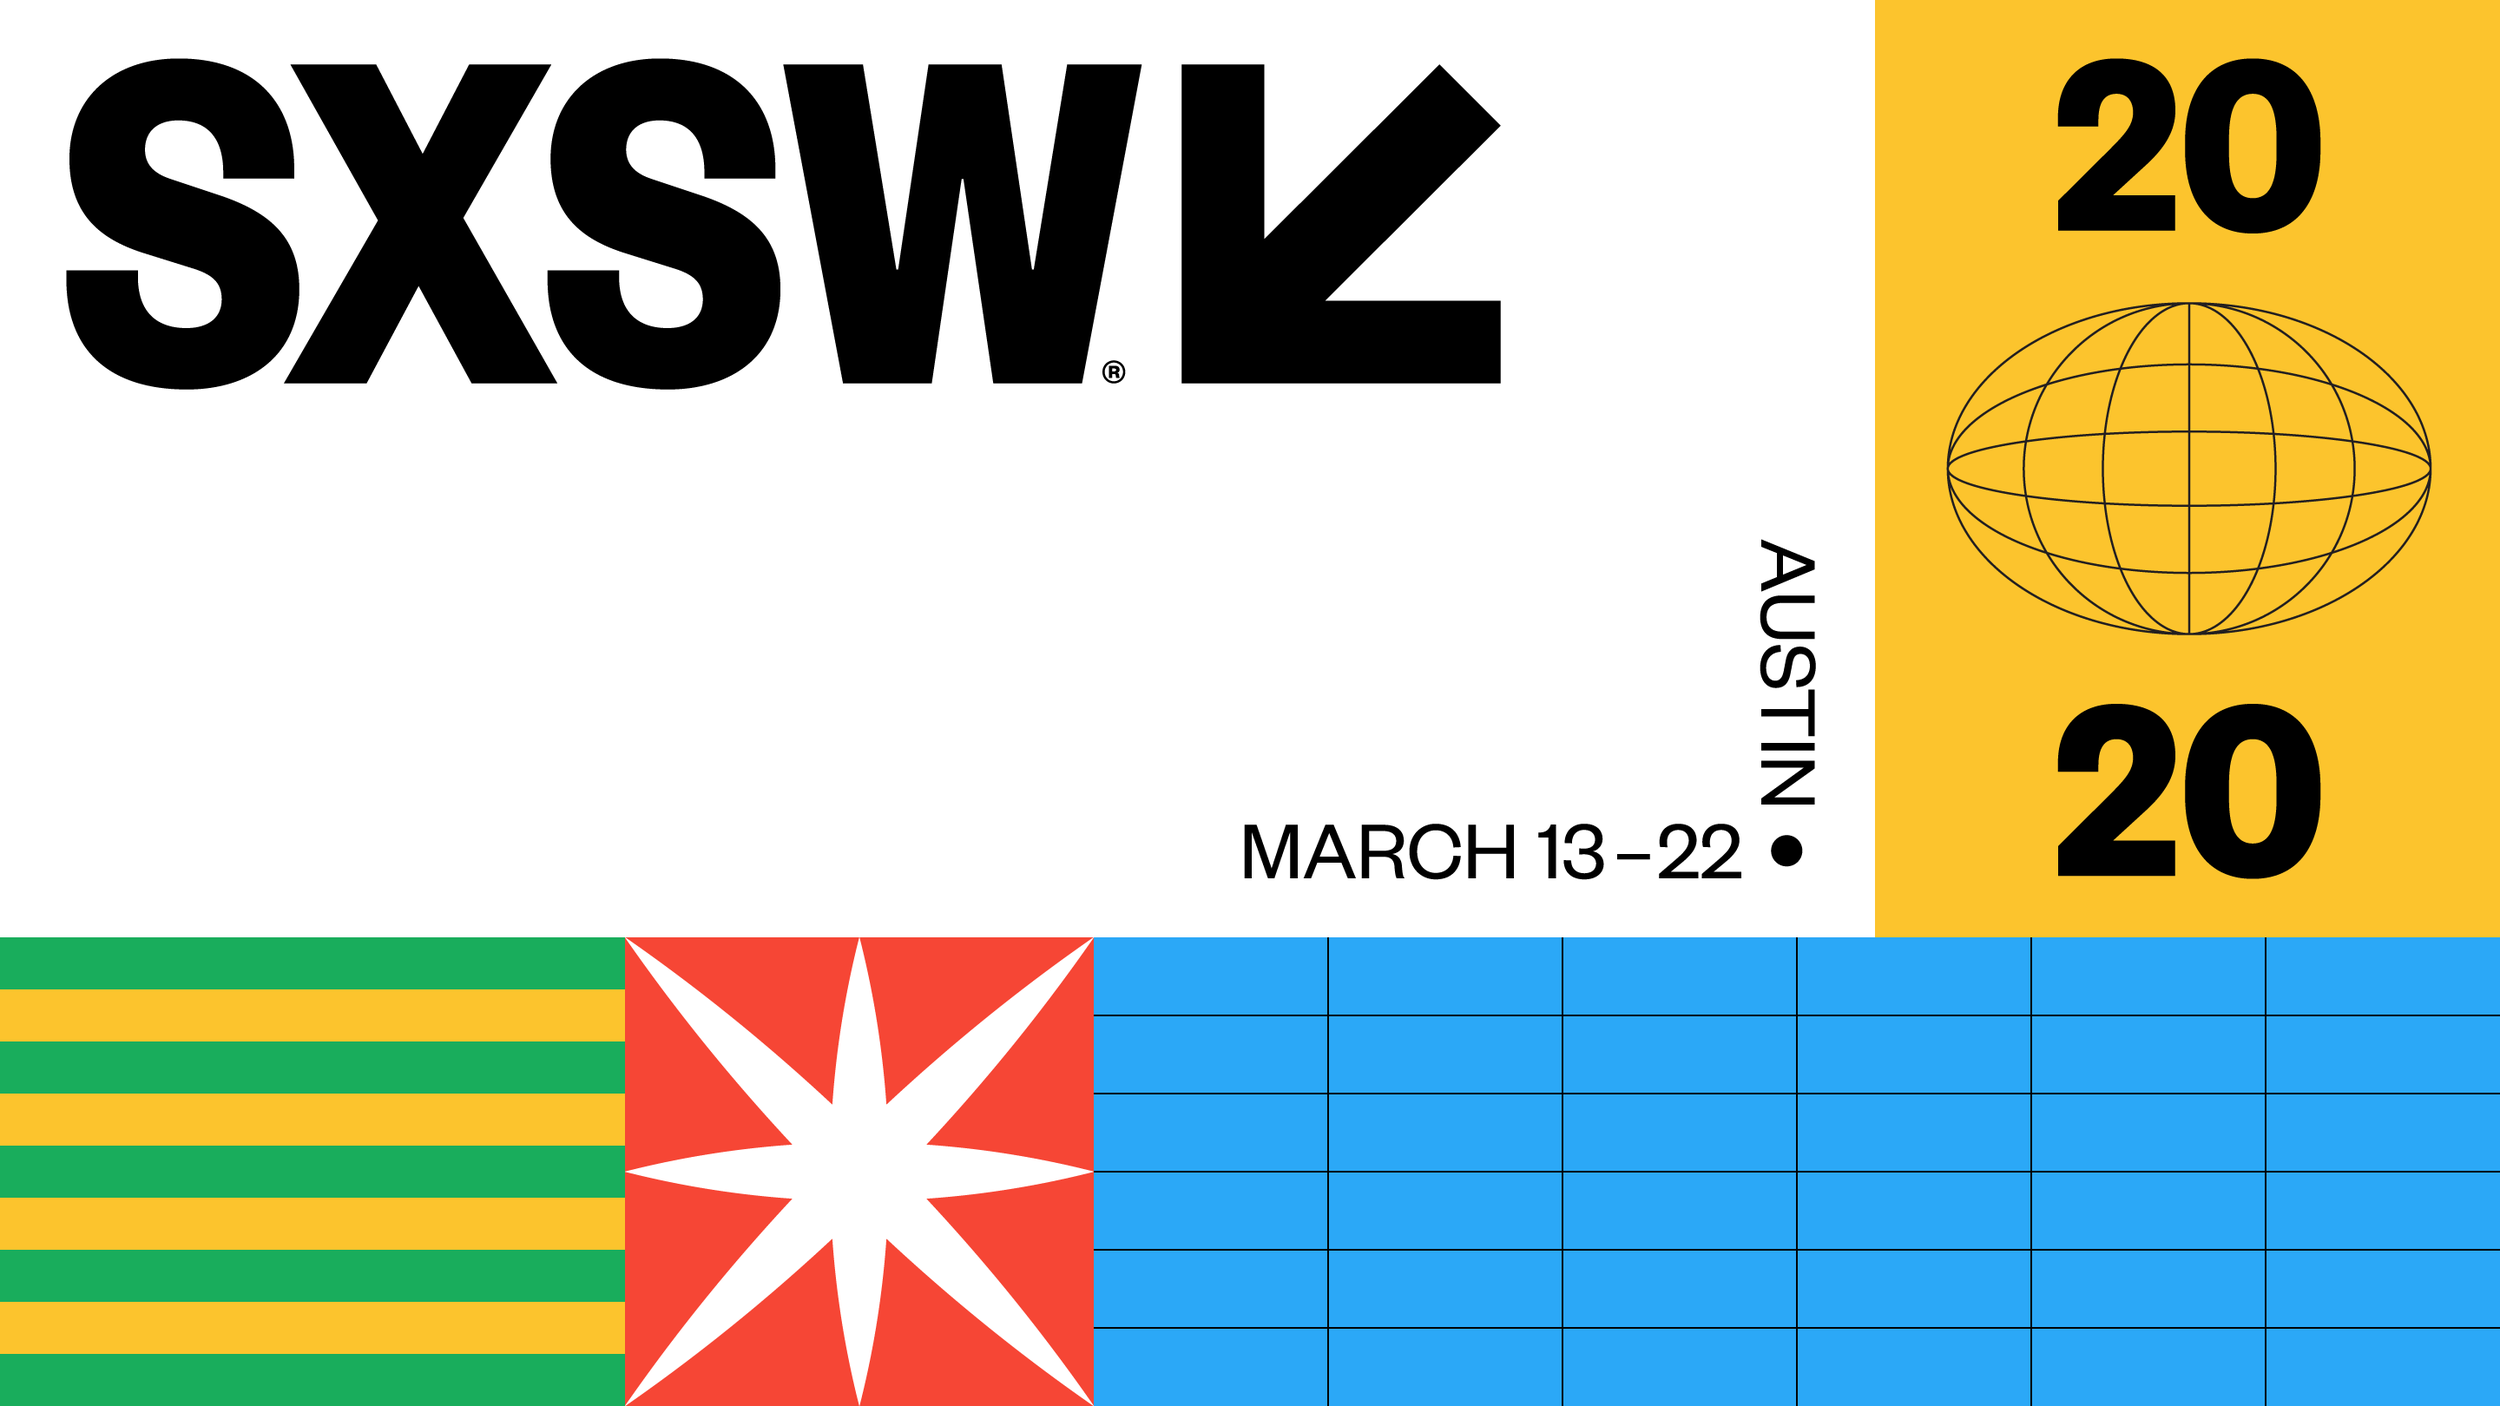 20_SXSW_Website_SEO-1.png